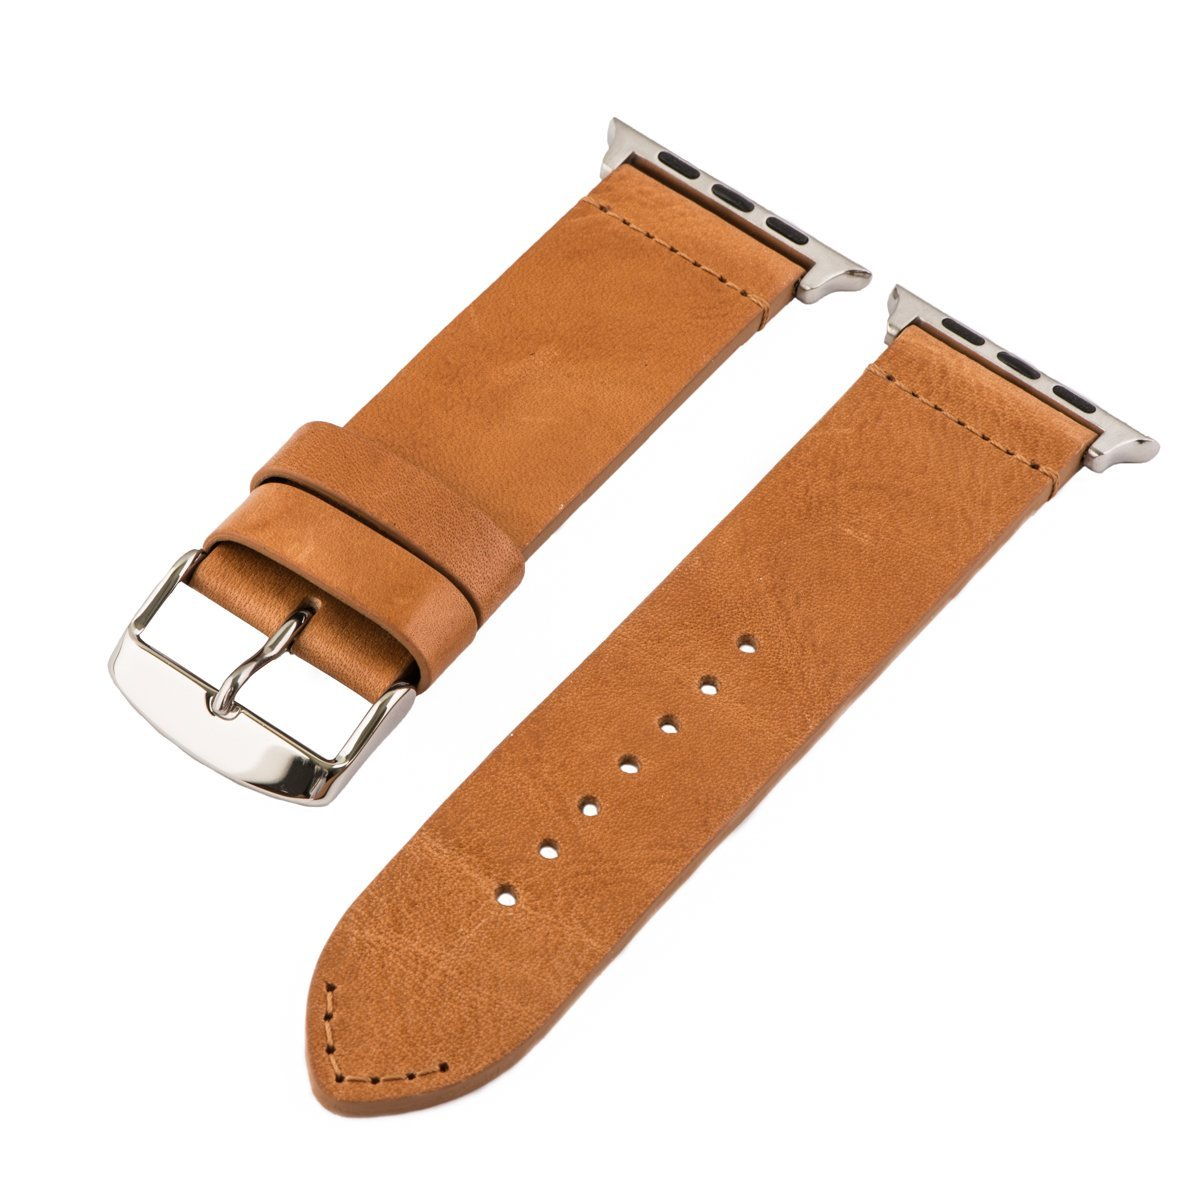 Clockwork Synergy - Watch Bands for Apple Watch (42mm Vintage Saddle Leather SS)